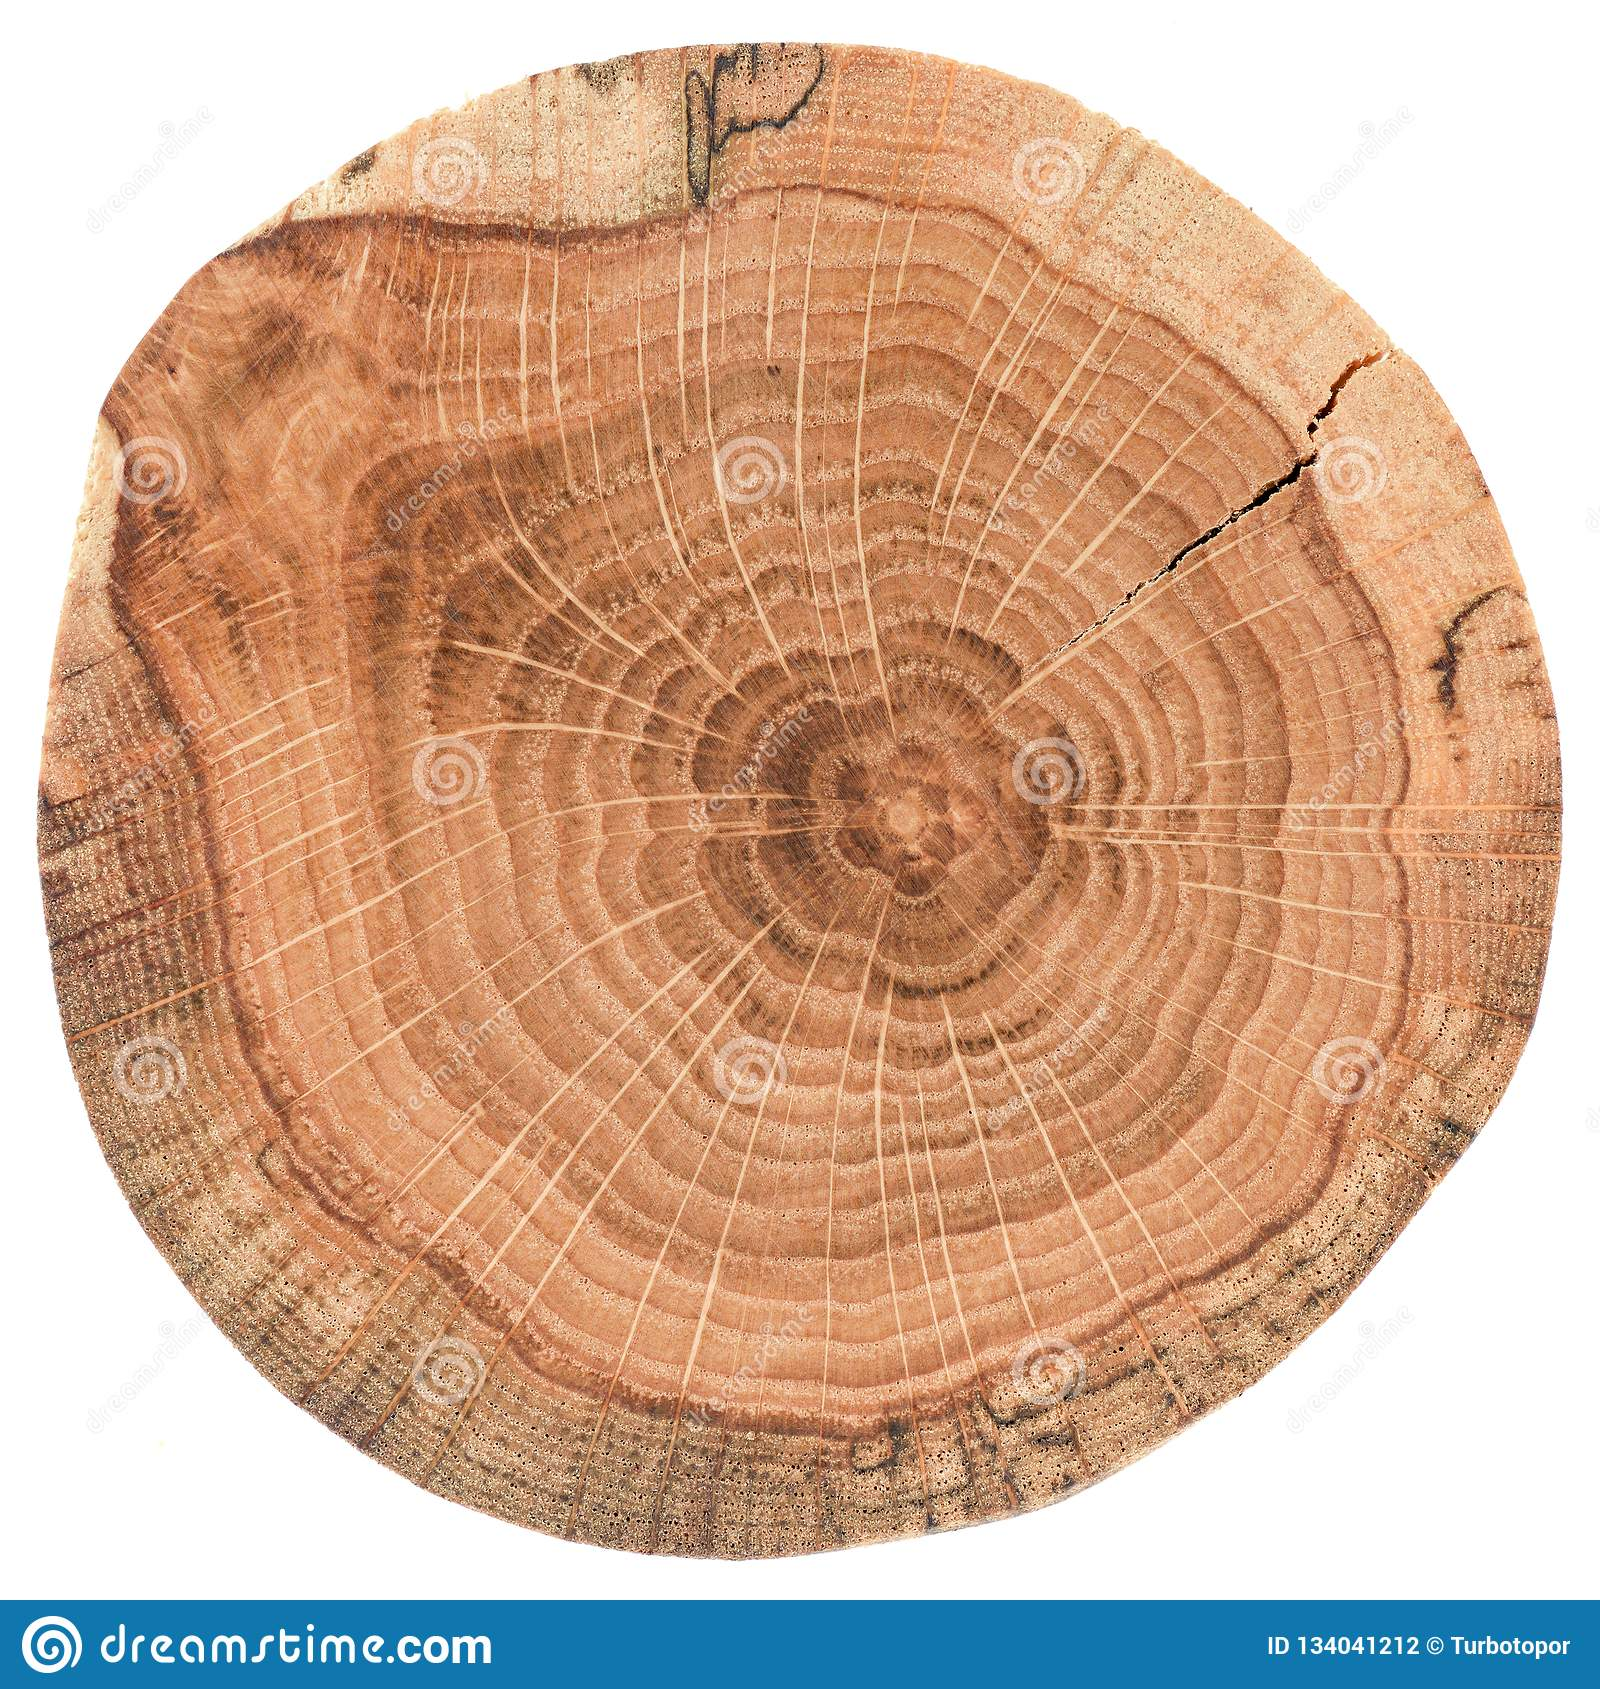 Piece of circular wood stump with cracks and growth rings. Oak tree slab texture isolated on white background